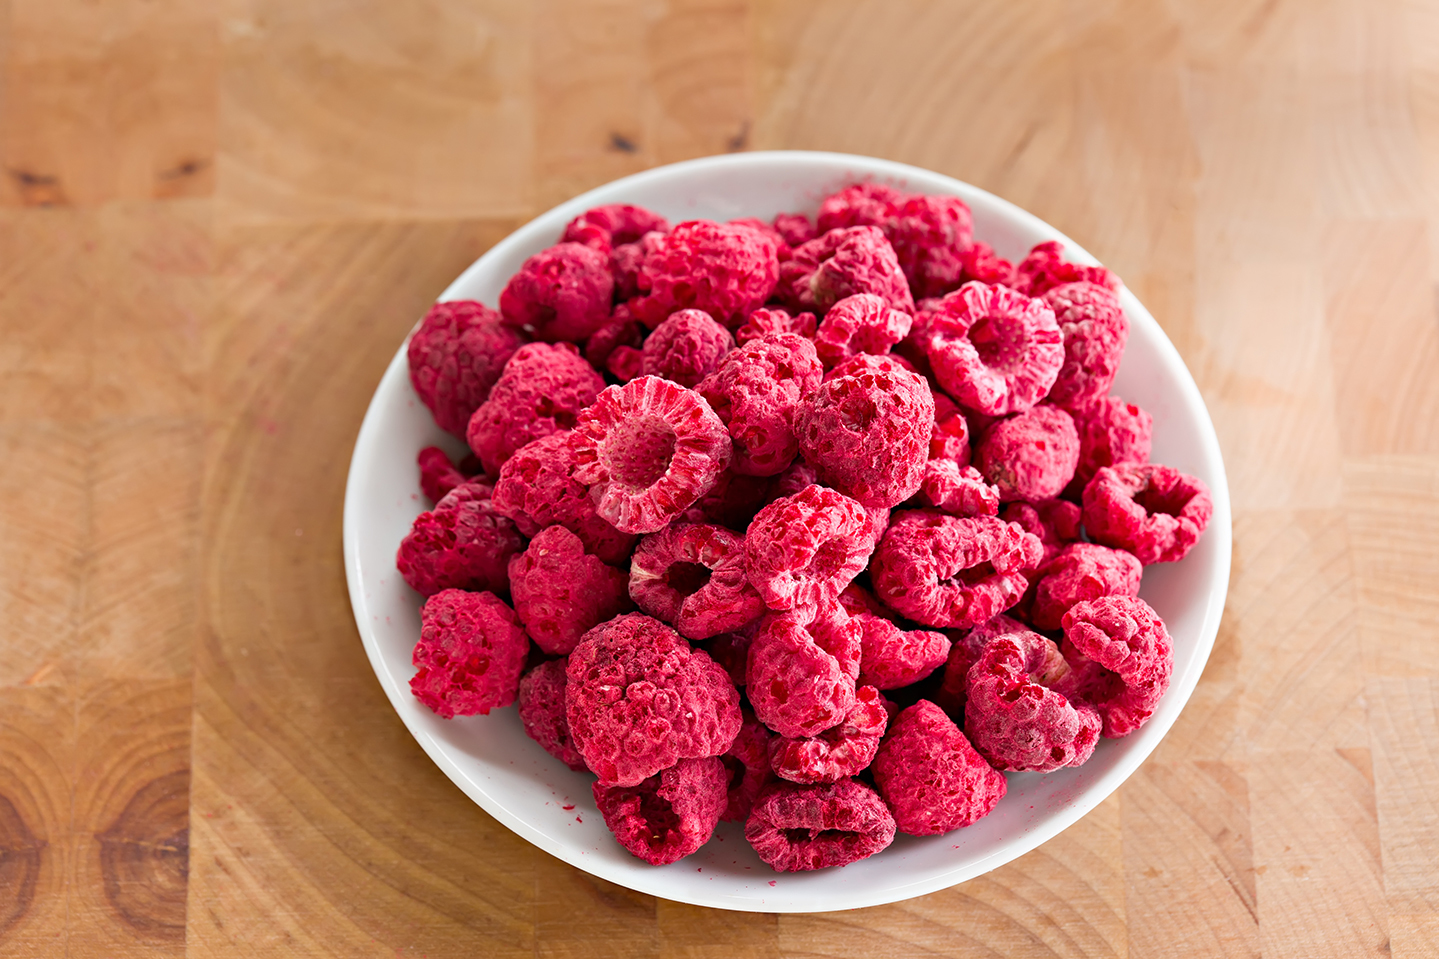 Freeze-dried raspberries